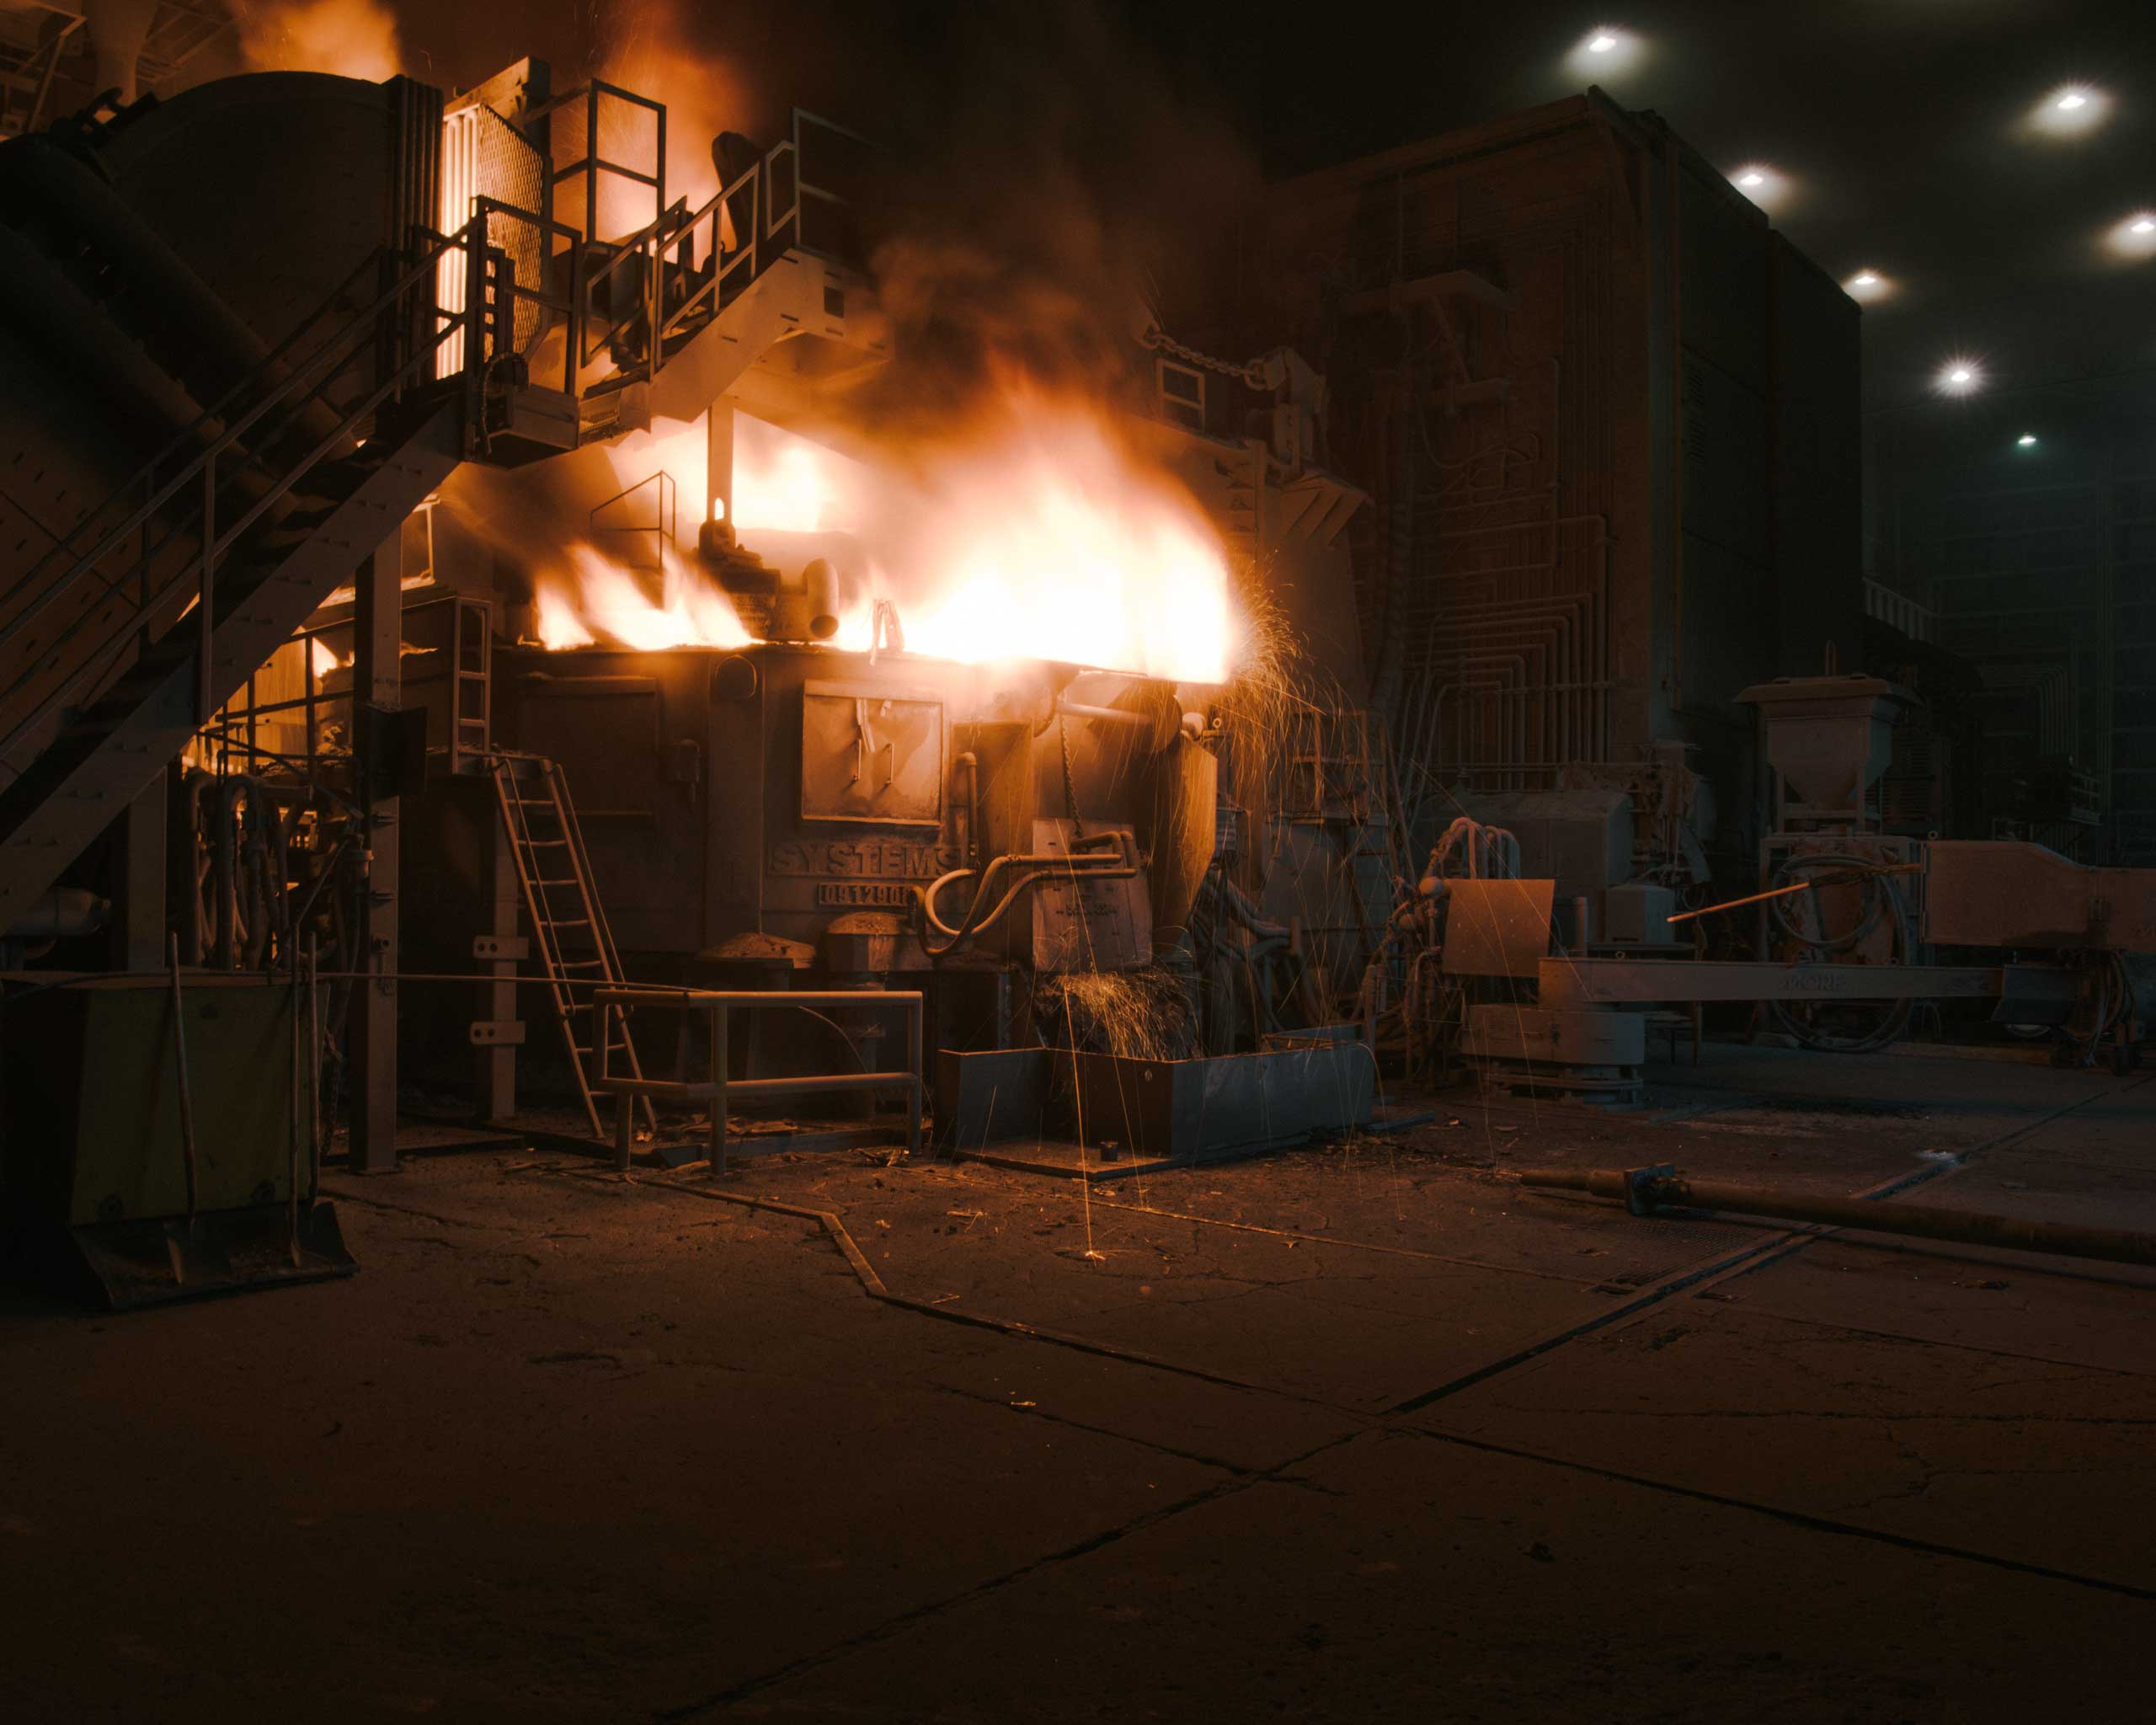 Nucor melts scrap at close to 3,000 degrees                                   Fahrenheit in furnaces like this one, Crawfordsville, Ind. on Aug. 25, 2014.